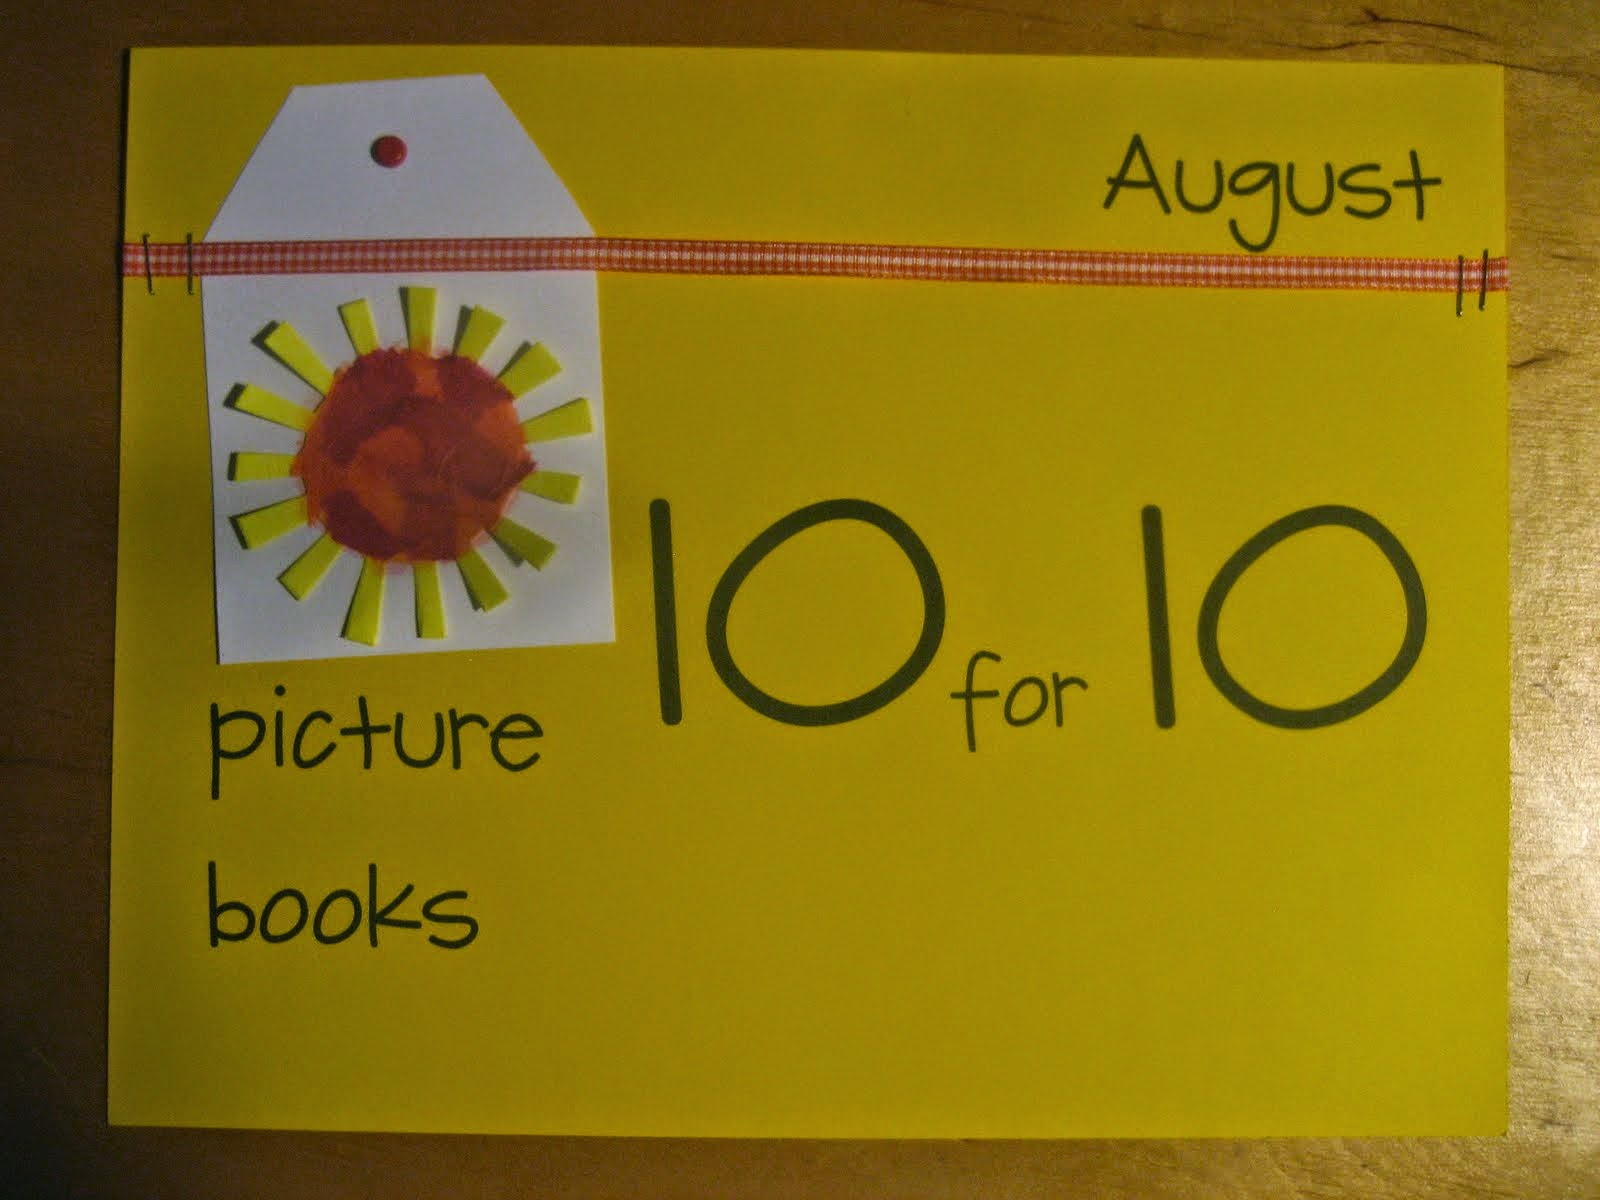 August 10 for 10 #PB10for10